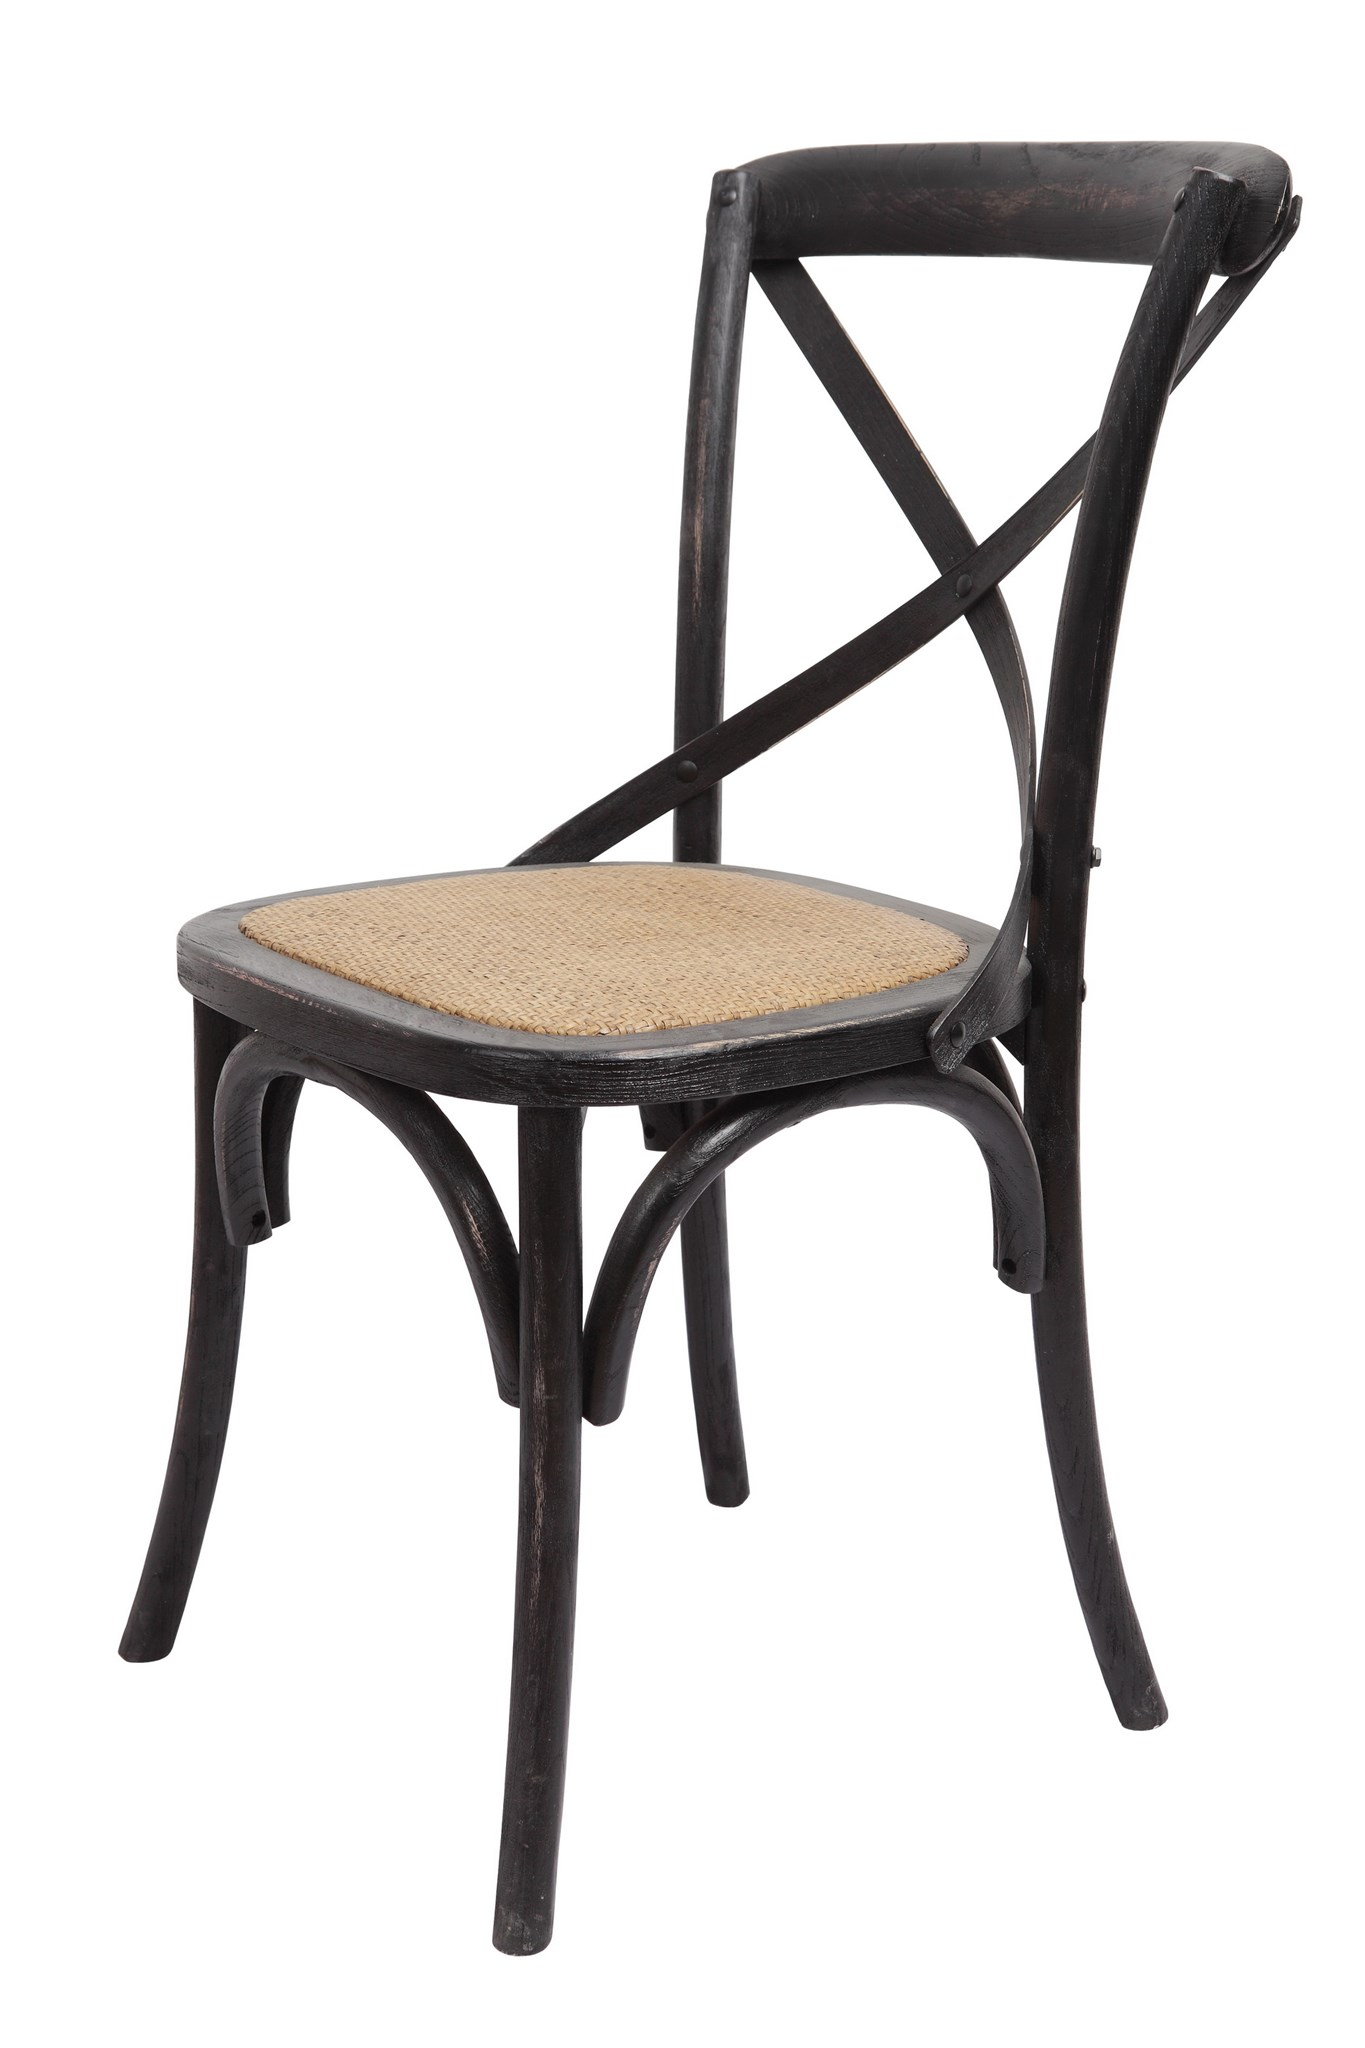 Swell Brody X Back Side Chair Black Exquisite Living Gmtry Best Dining Table And Chair Ideas Images Gmtryco